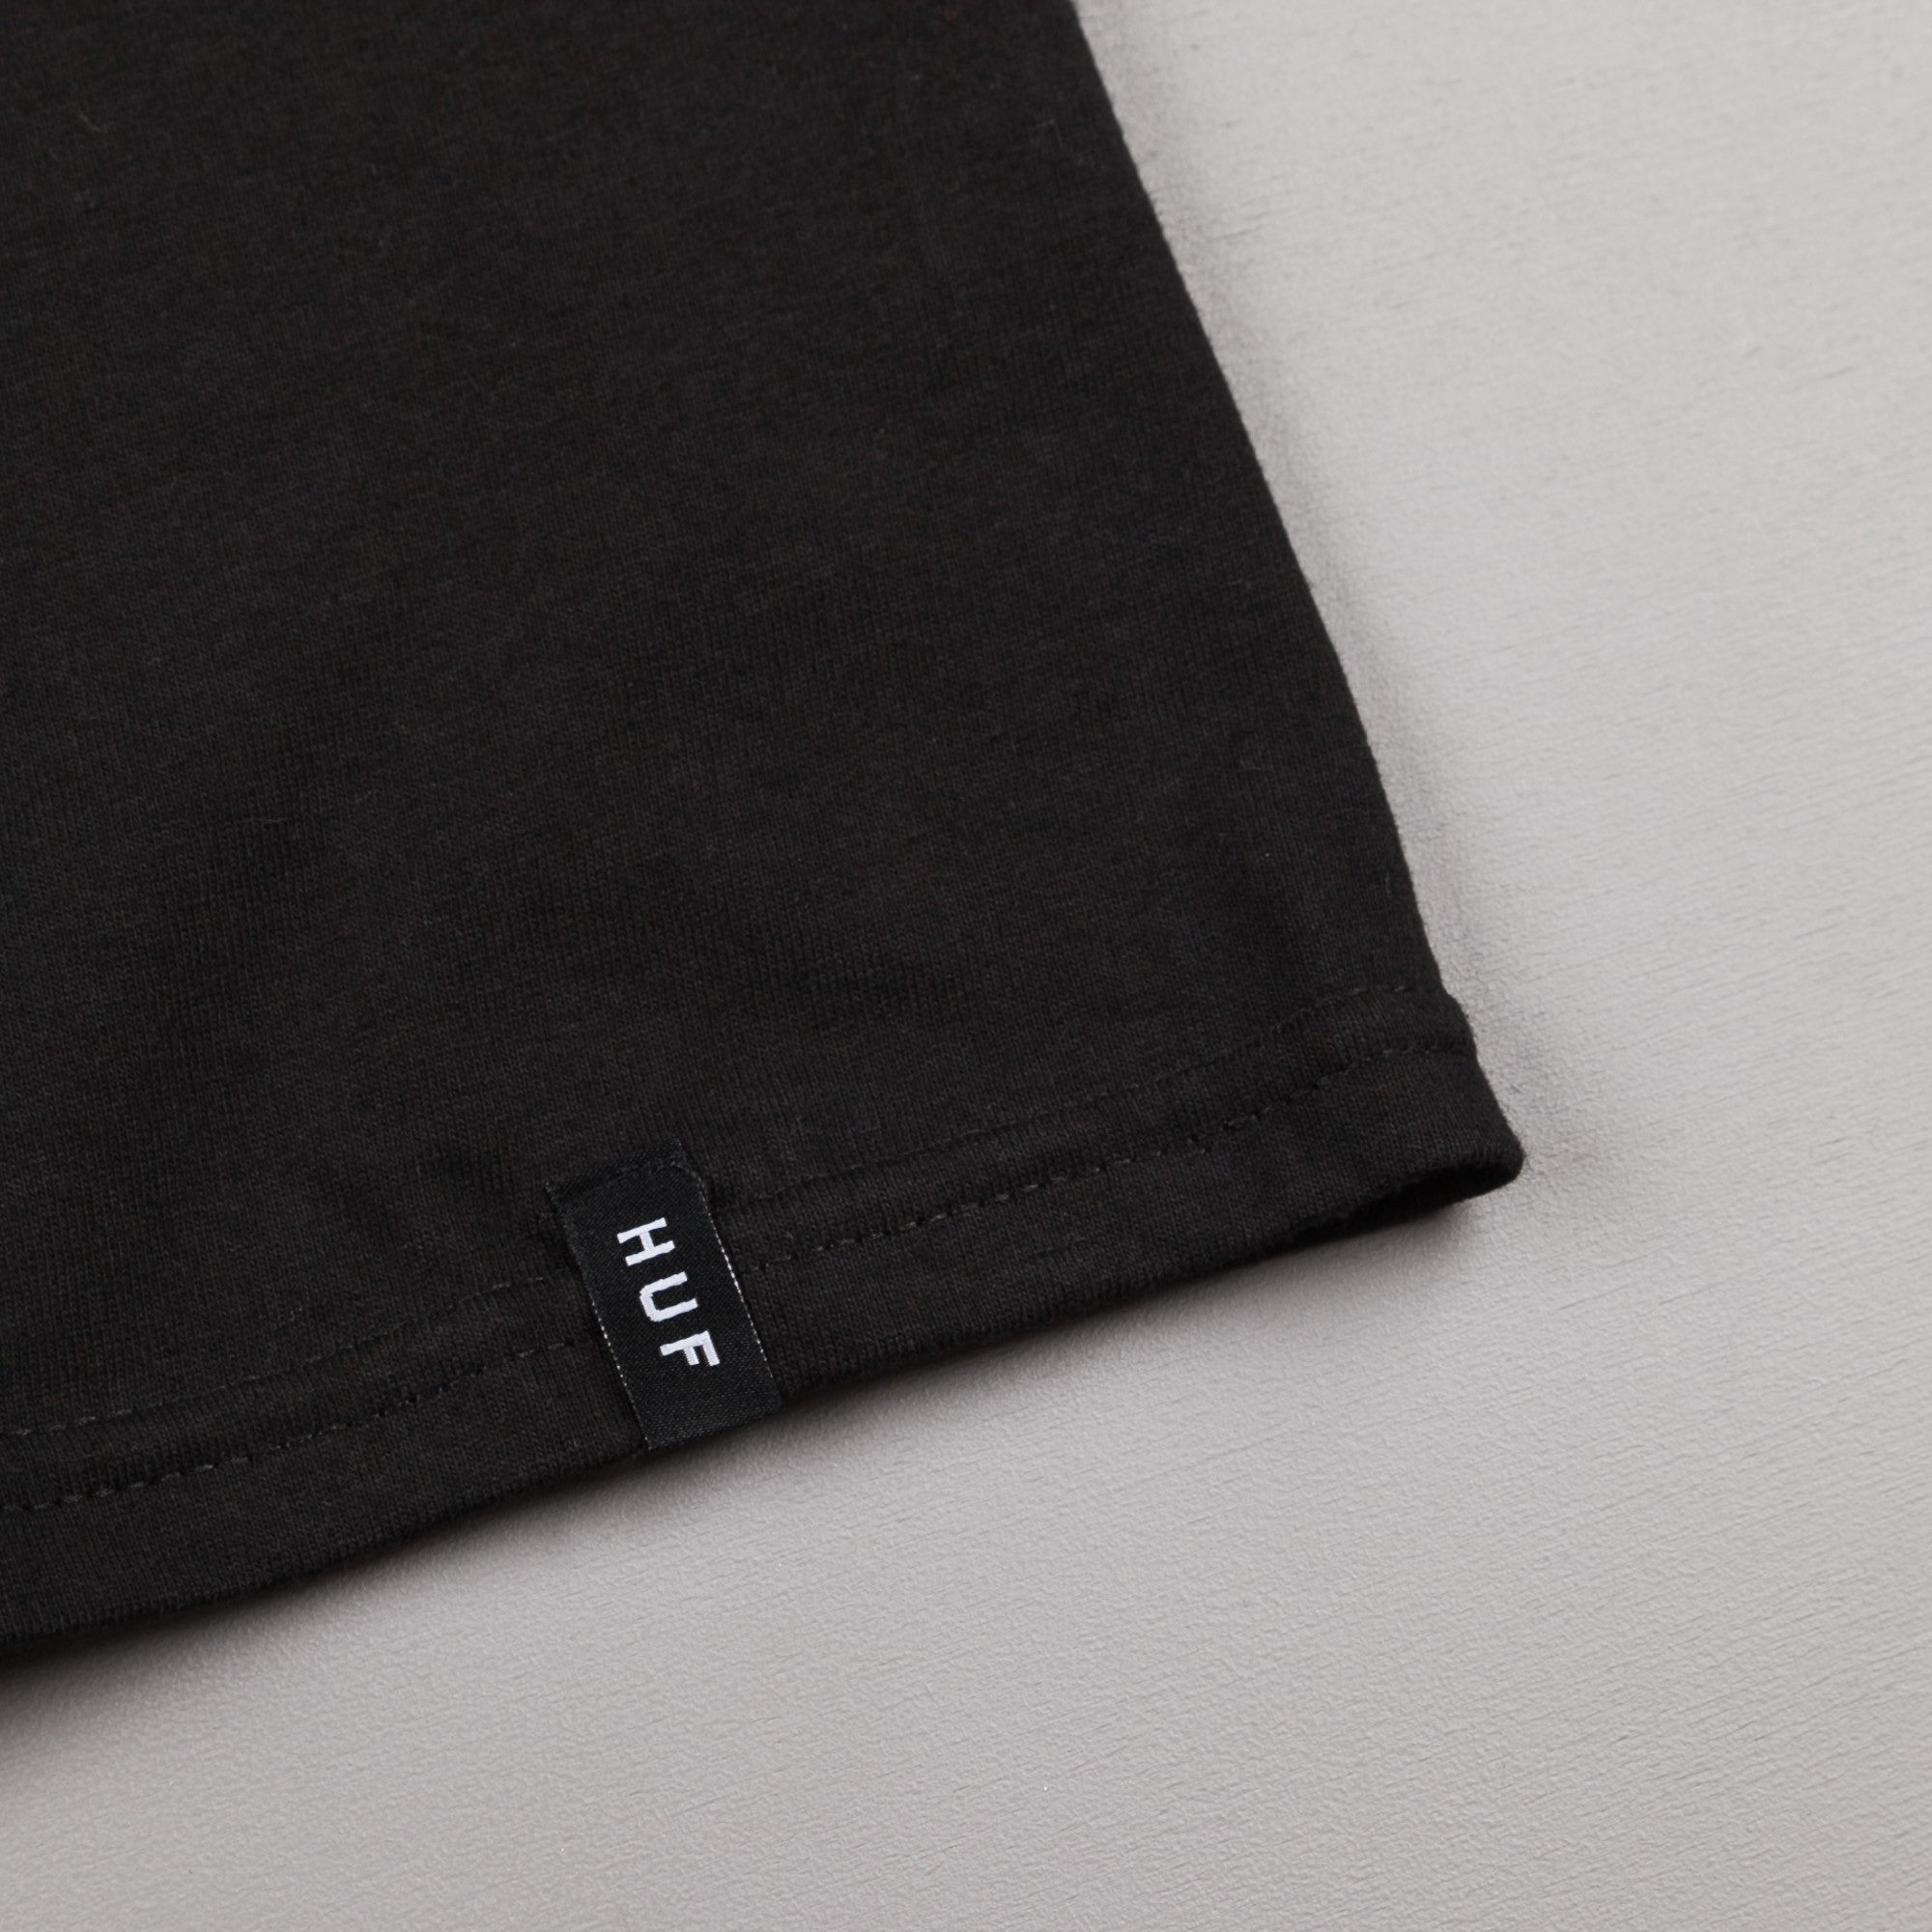 HUF Muted Military Triple Triangle T-Shirt - Black